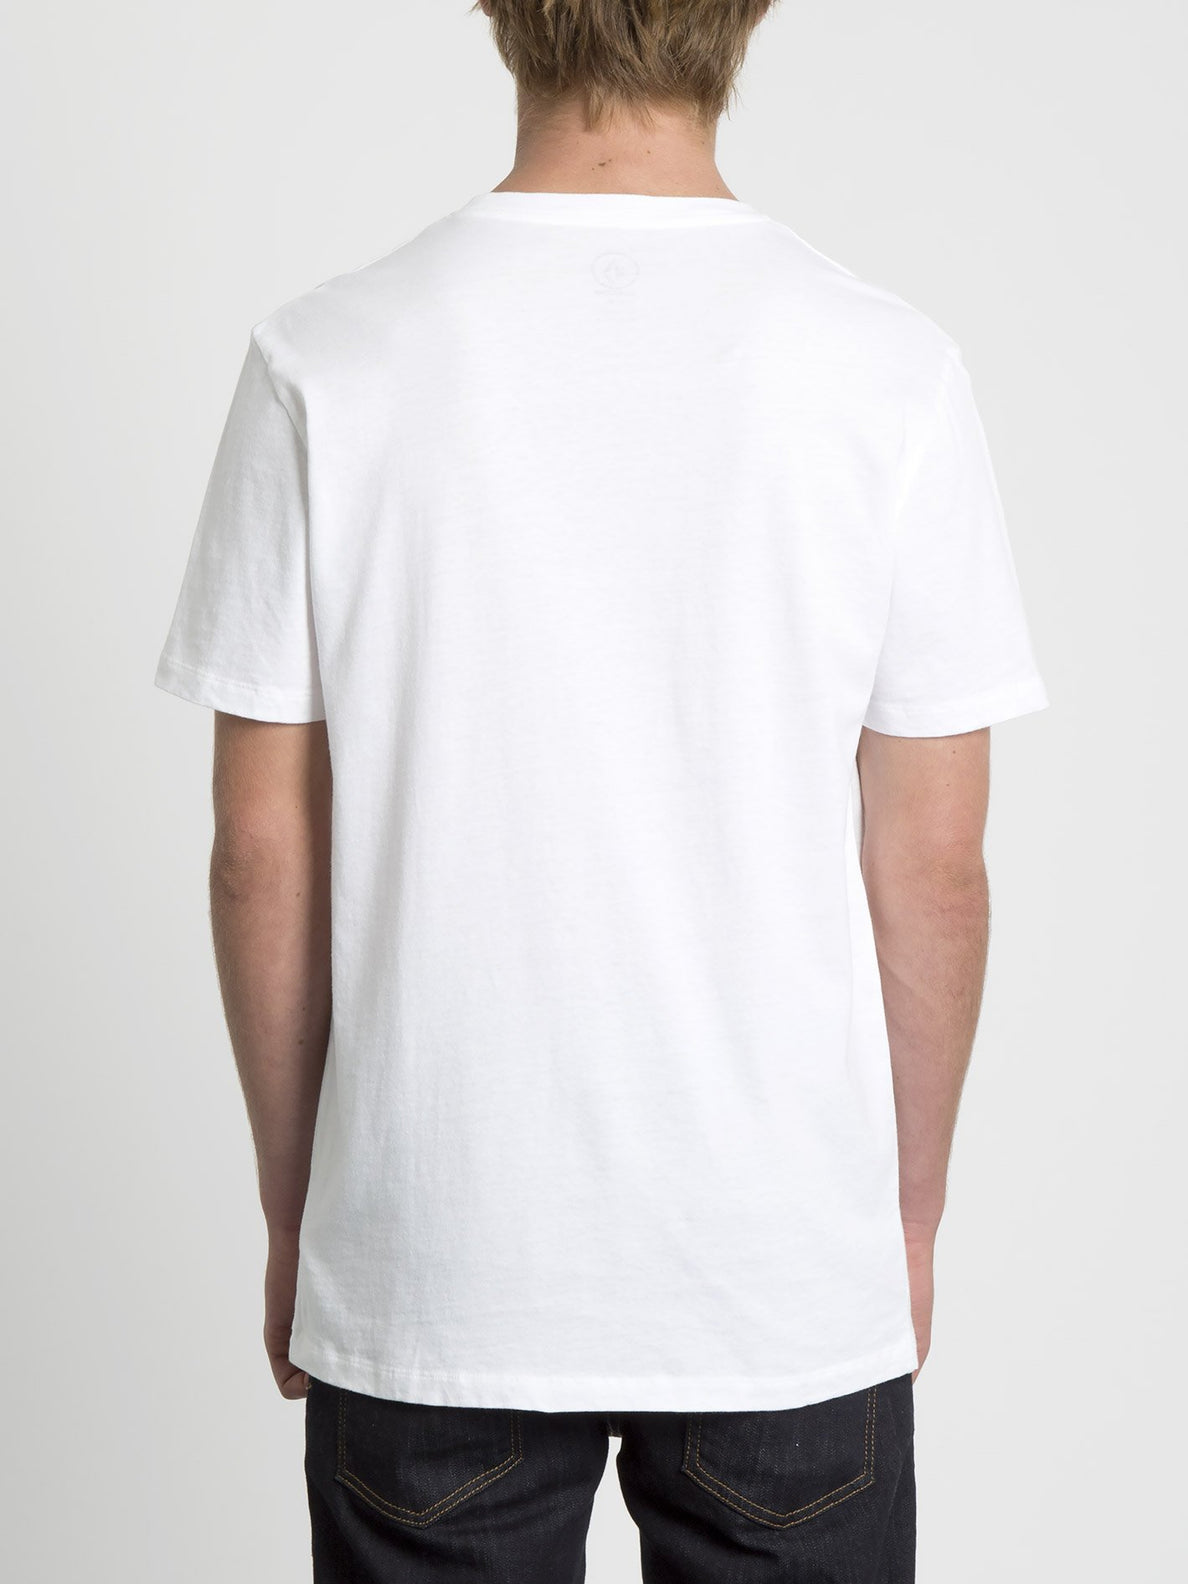 Disclose T-shirt - White (A4331963_WHT) [B]